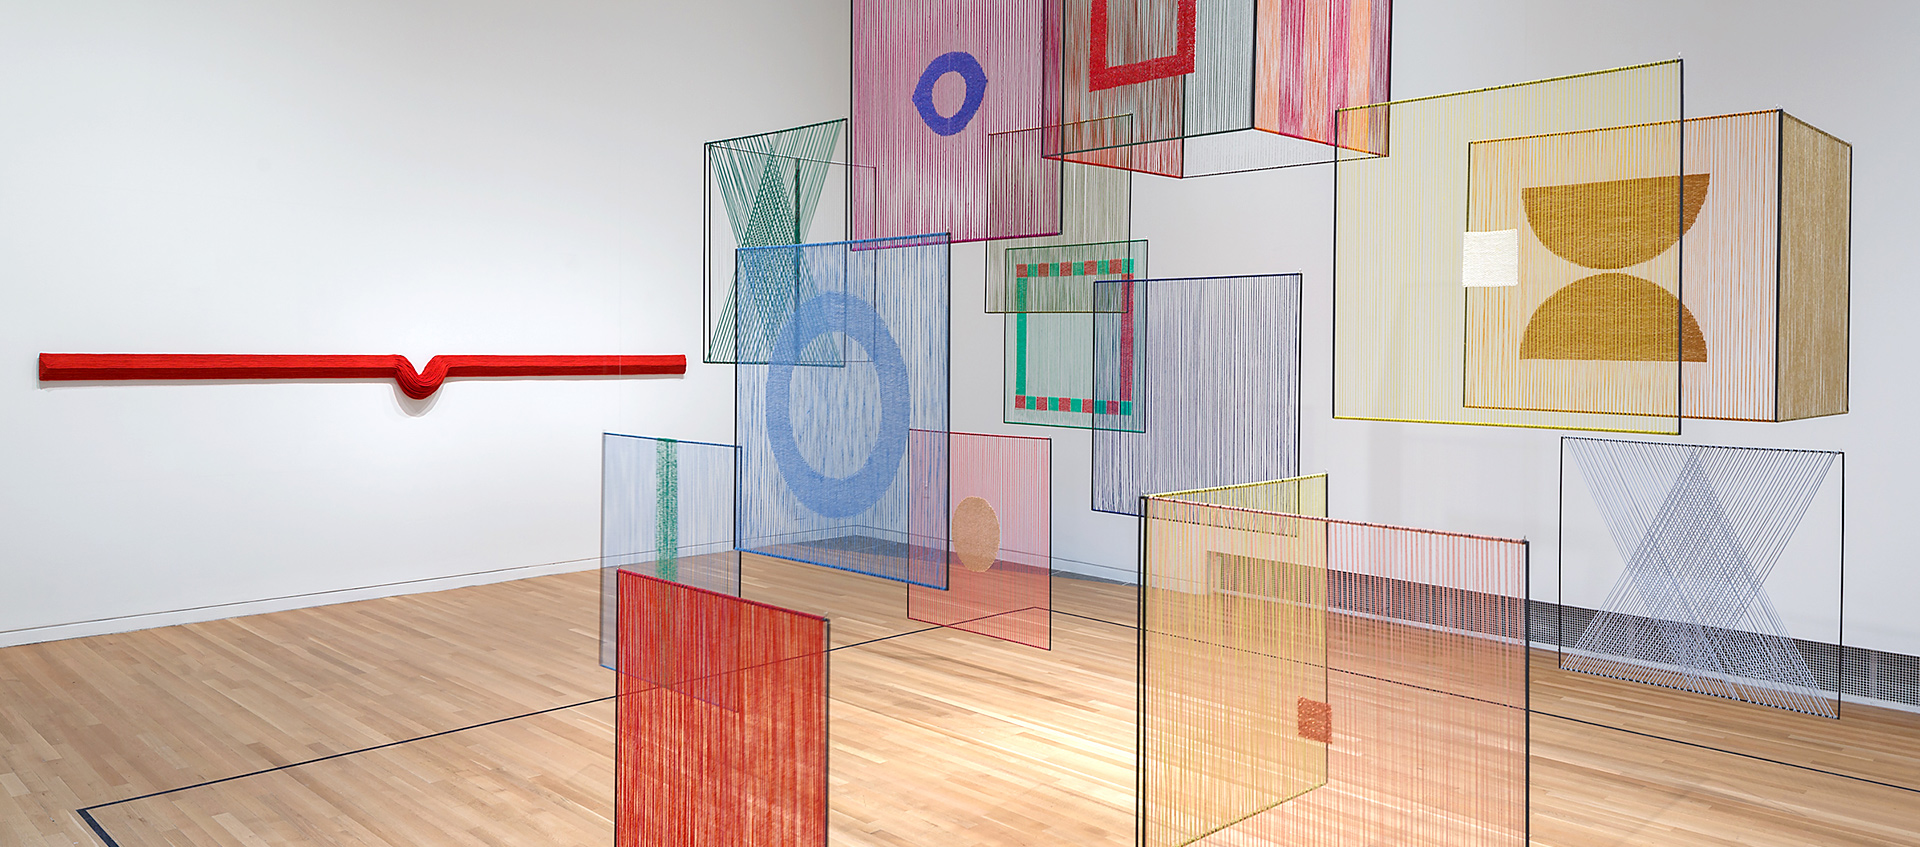 Large geometric textile shapes of different colors hanging from the ceiling the Wexner Center galleries